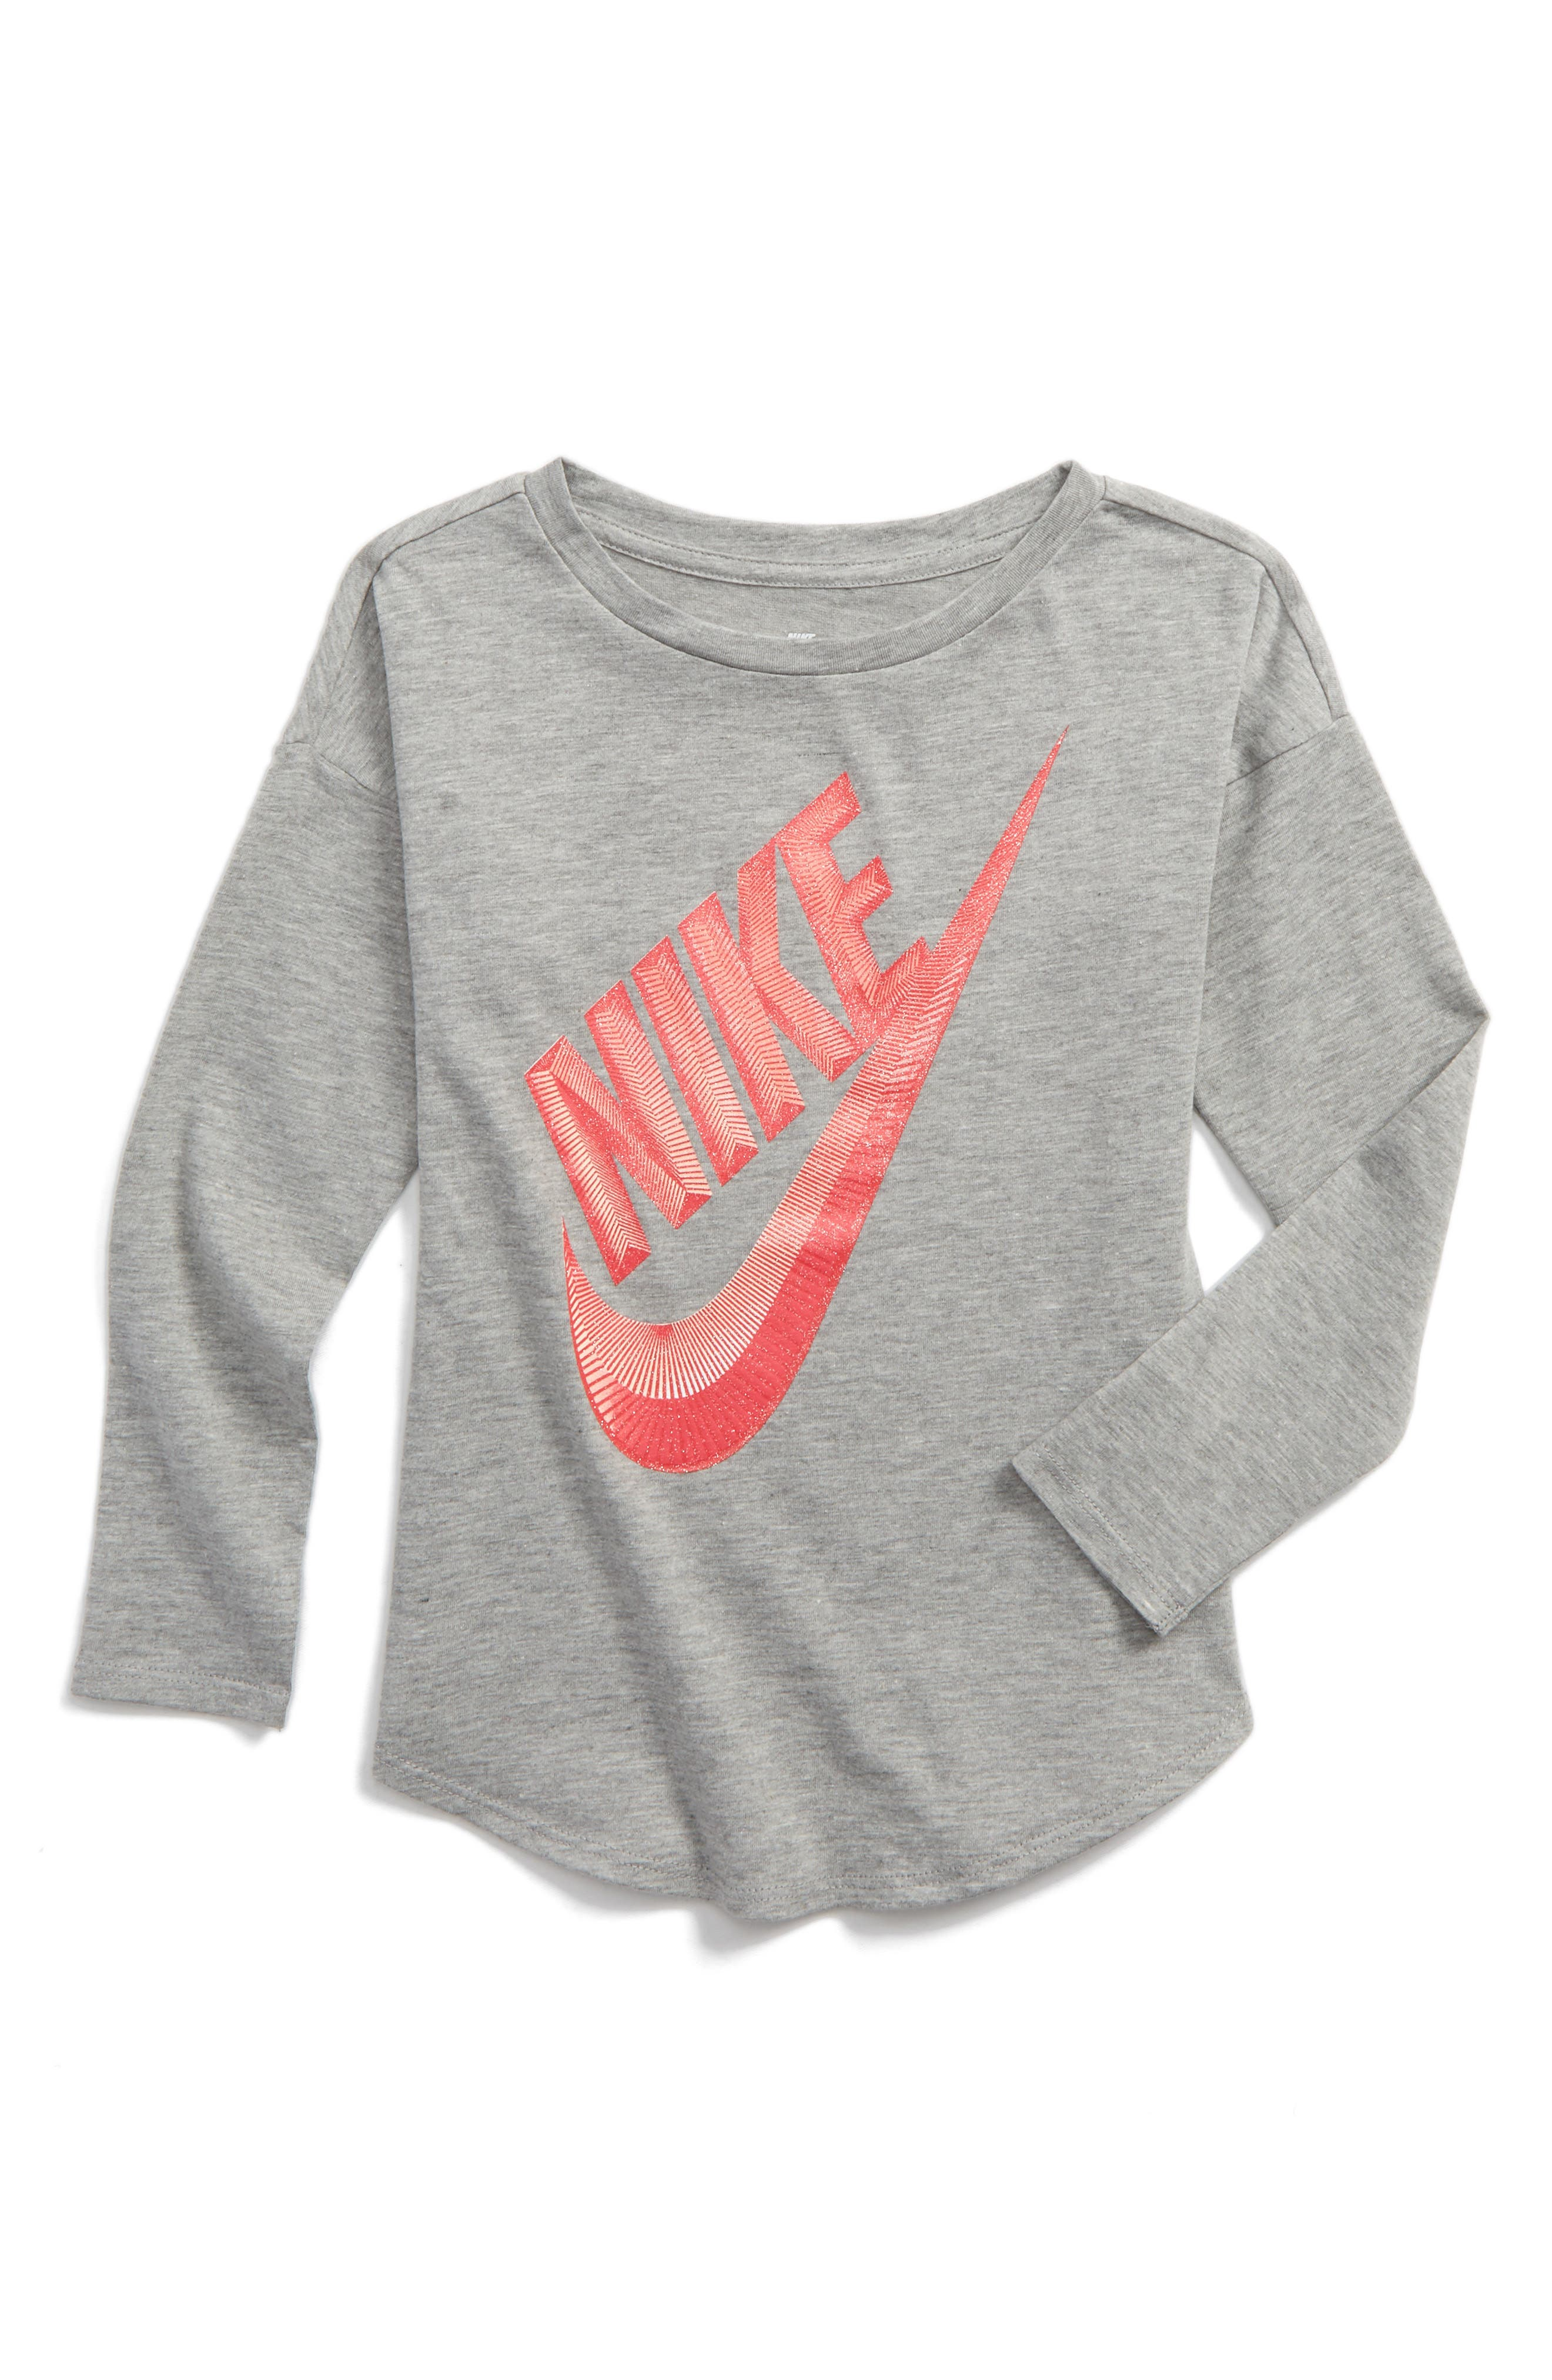 Alternate Image 1 Selected - Nike Futura Modern Tee (Toddler Girls & Little Girls)